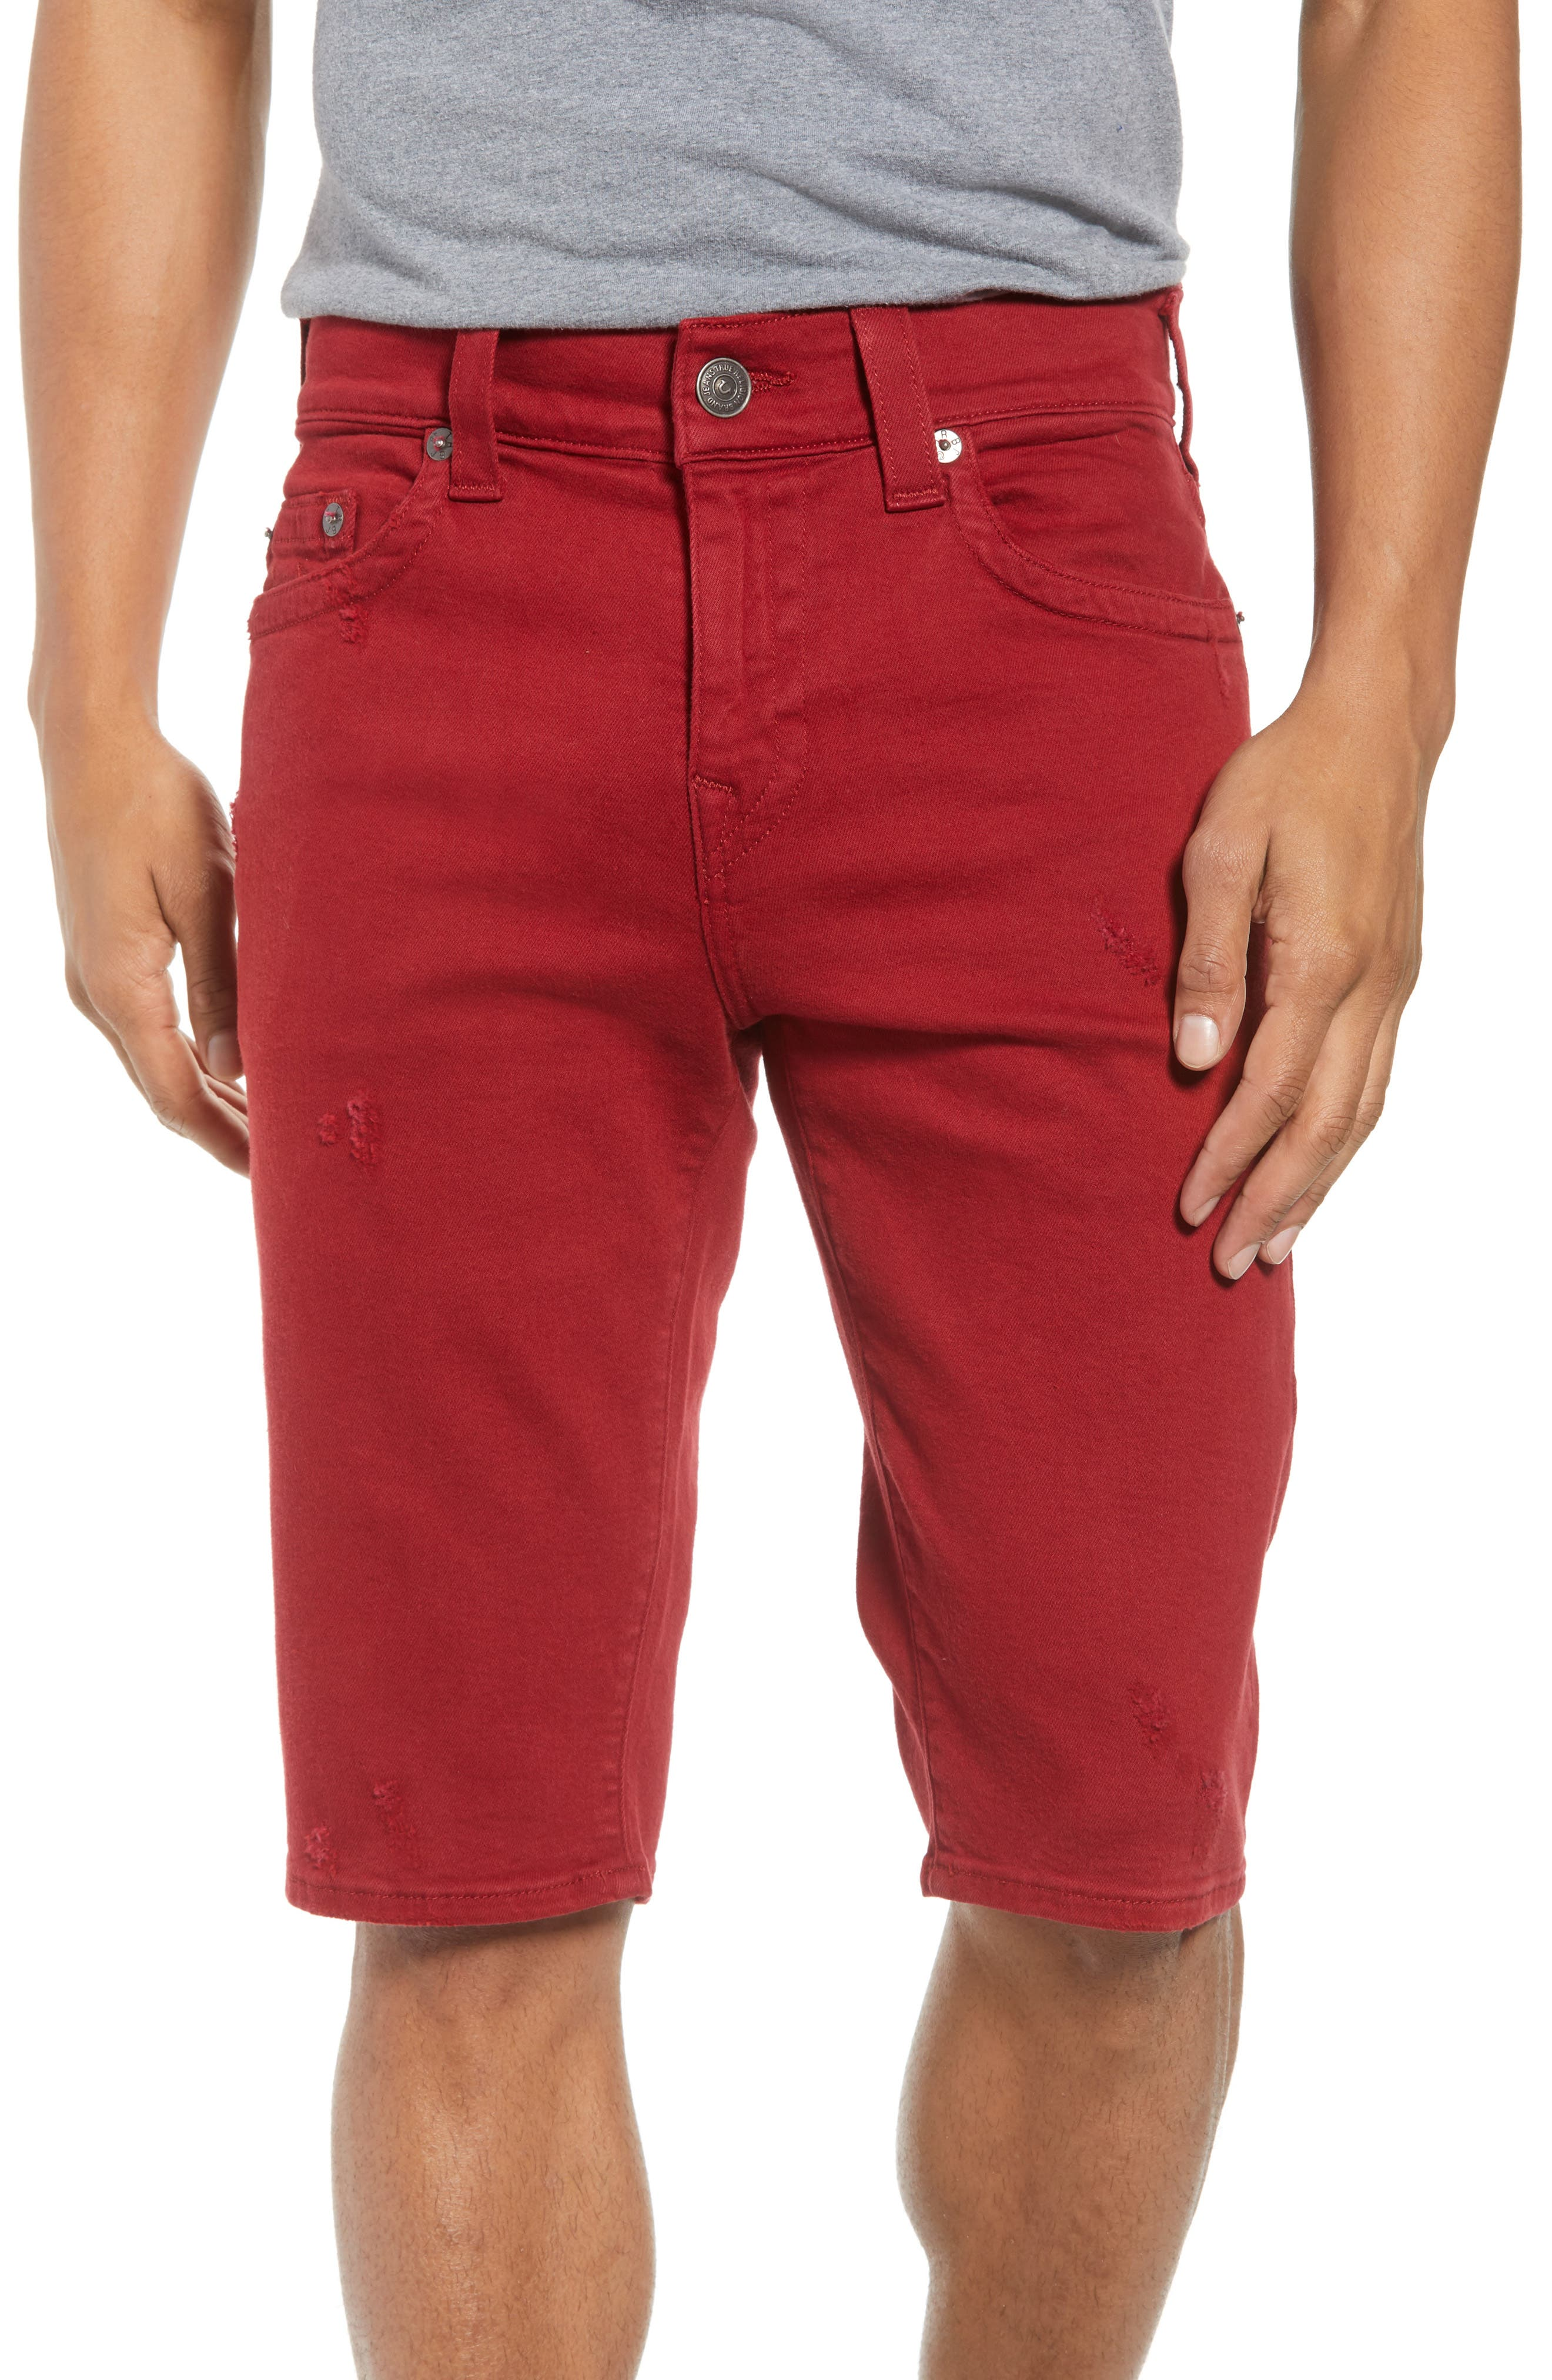 True Religion Brand Jeans Ricky Relaxed Fit Shorts (Firecracker Red)